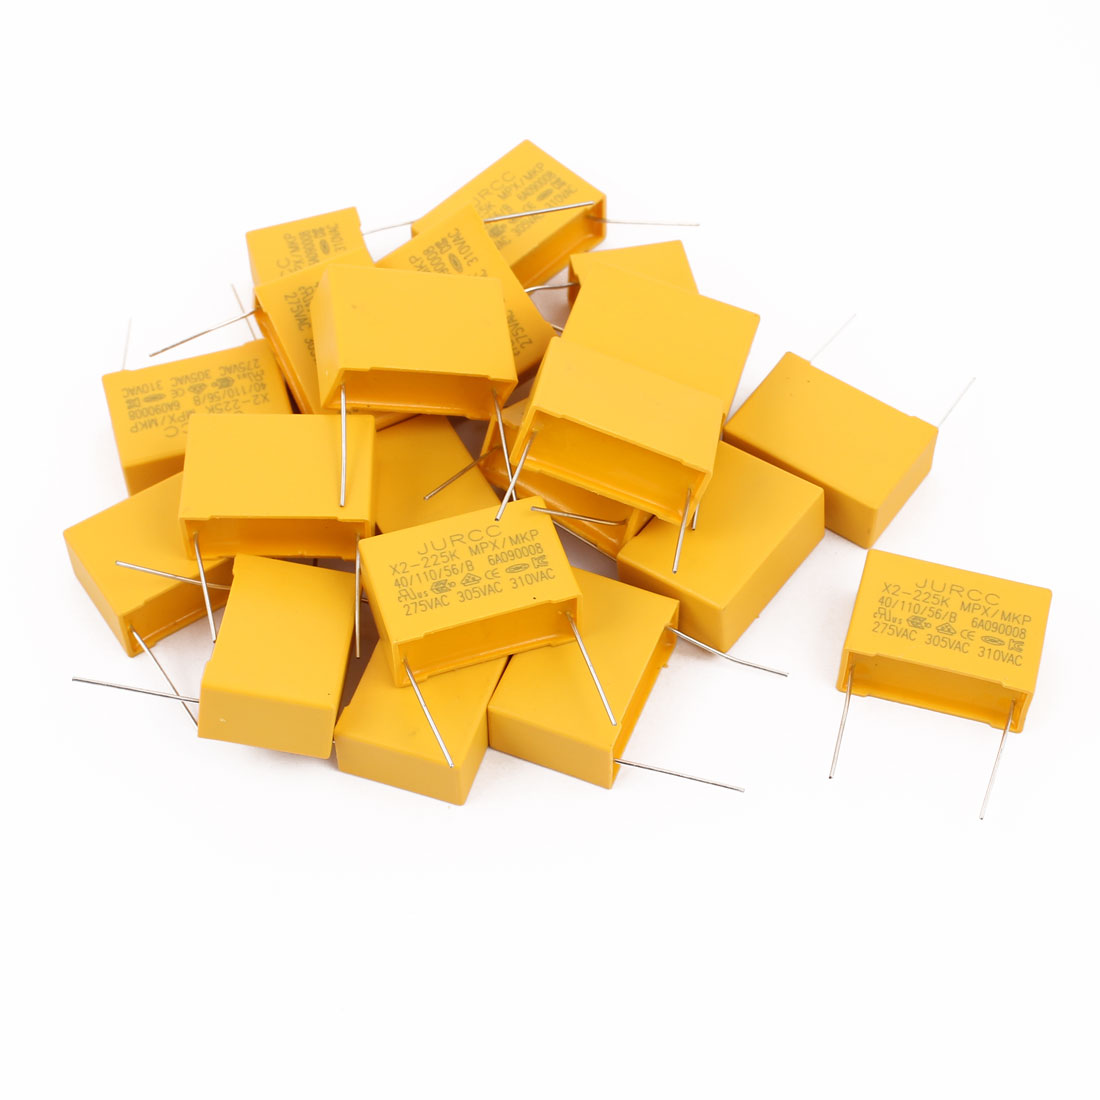 20Pcs Metal Axial Leads Safety Polyester Film Capacitor 310VAC 2.2uF Yellow